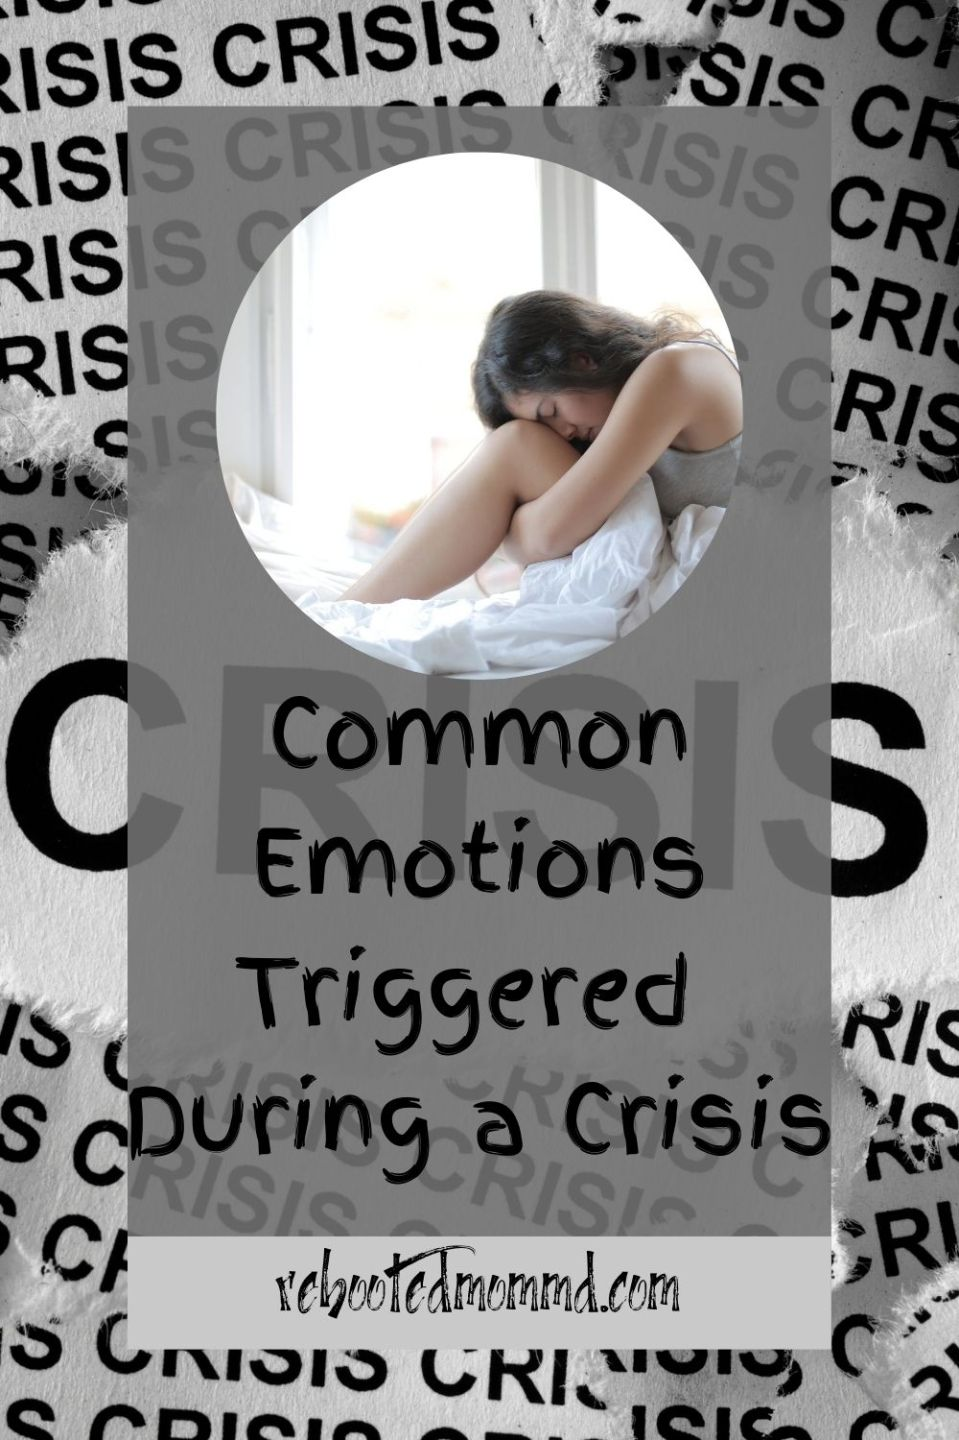 Common Emotions Triggered During a Crisis